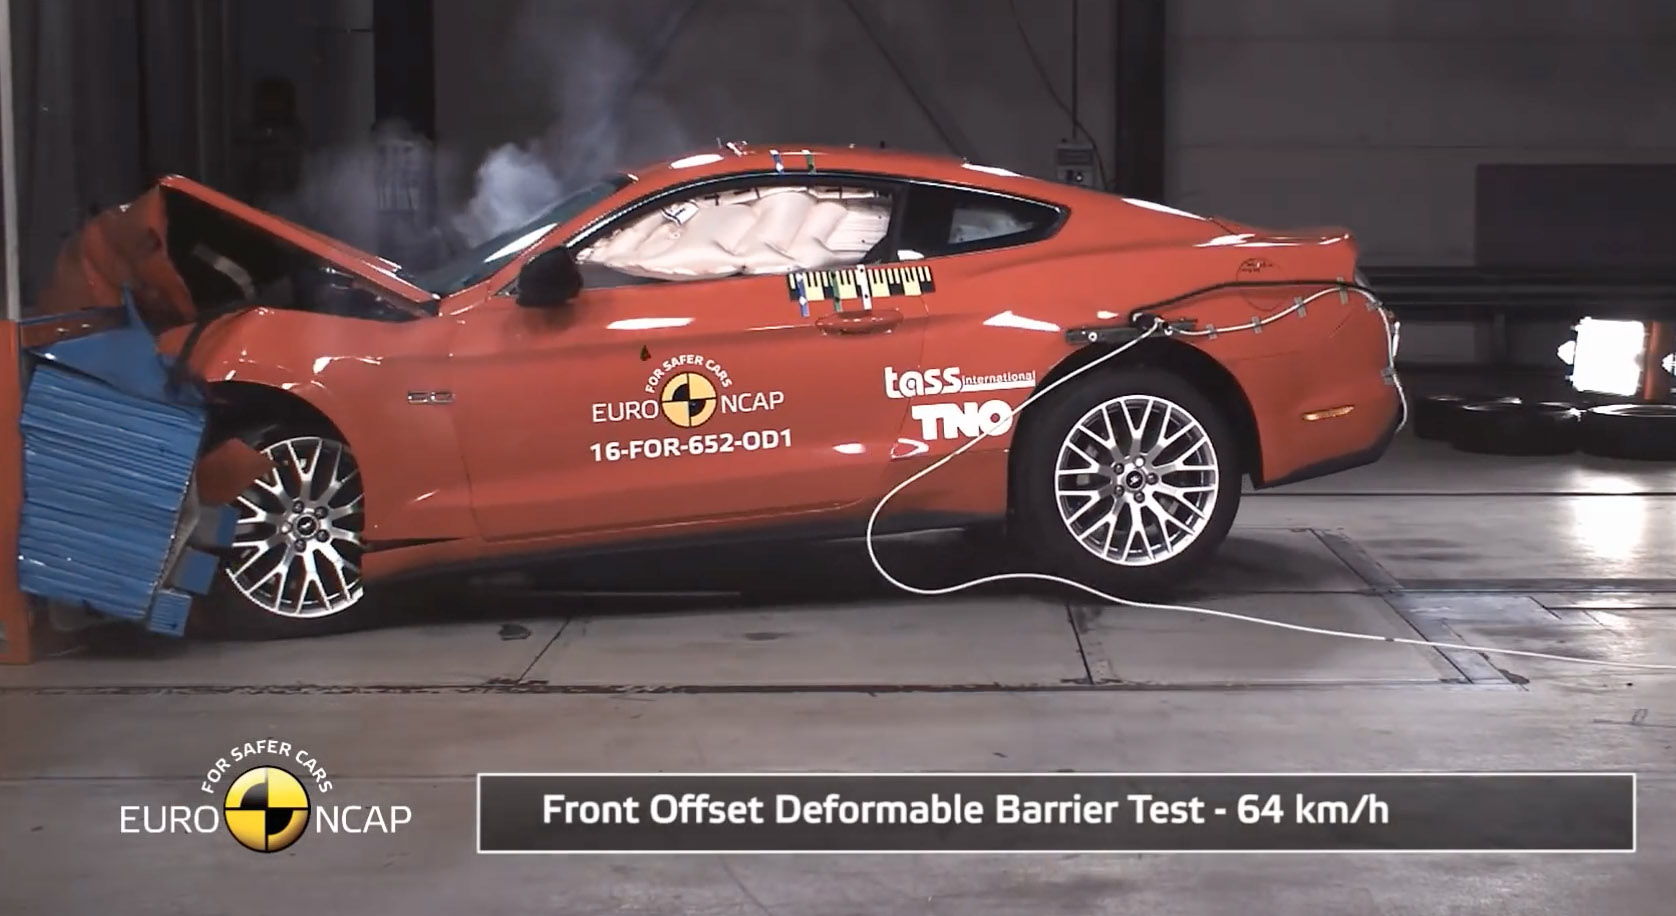 In this very standard crash, both front airbags failed to work properly